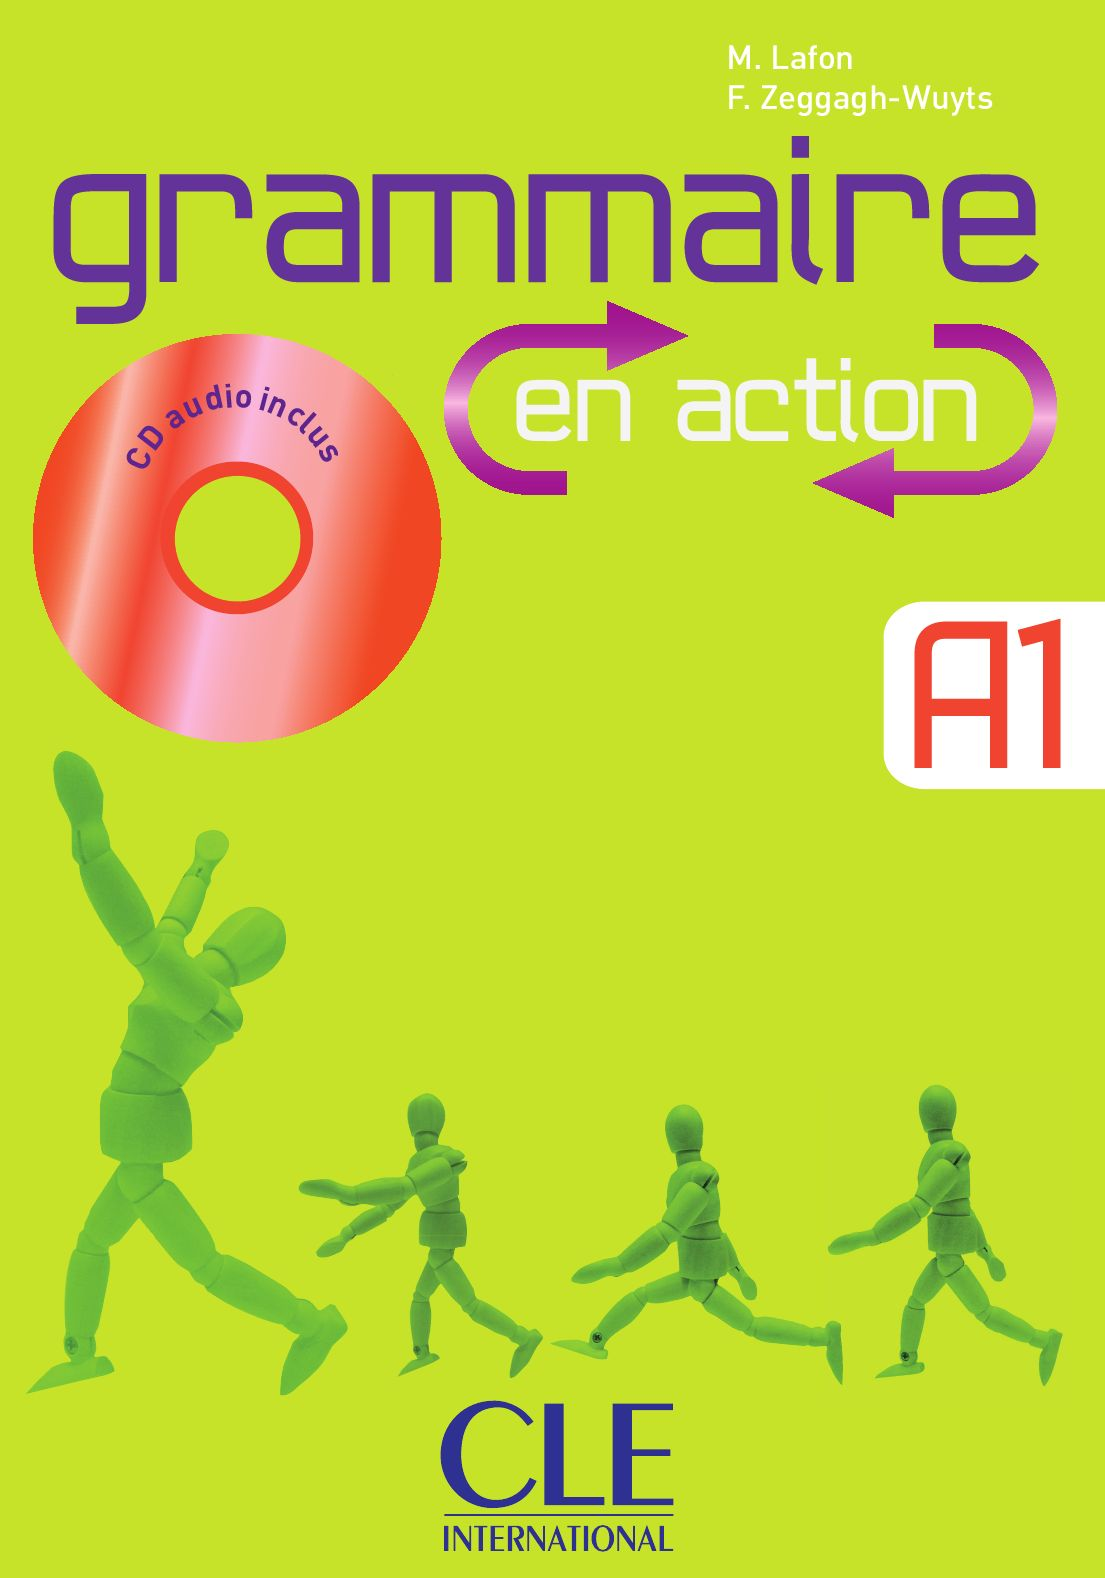 grammaire en action by cle international